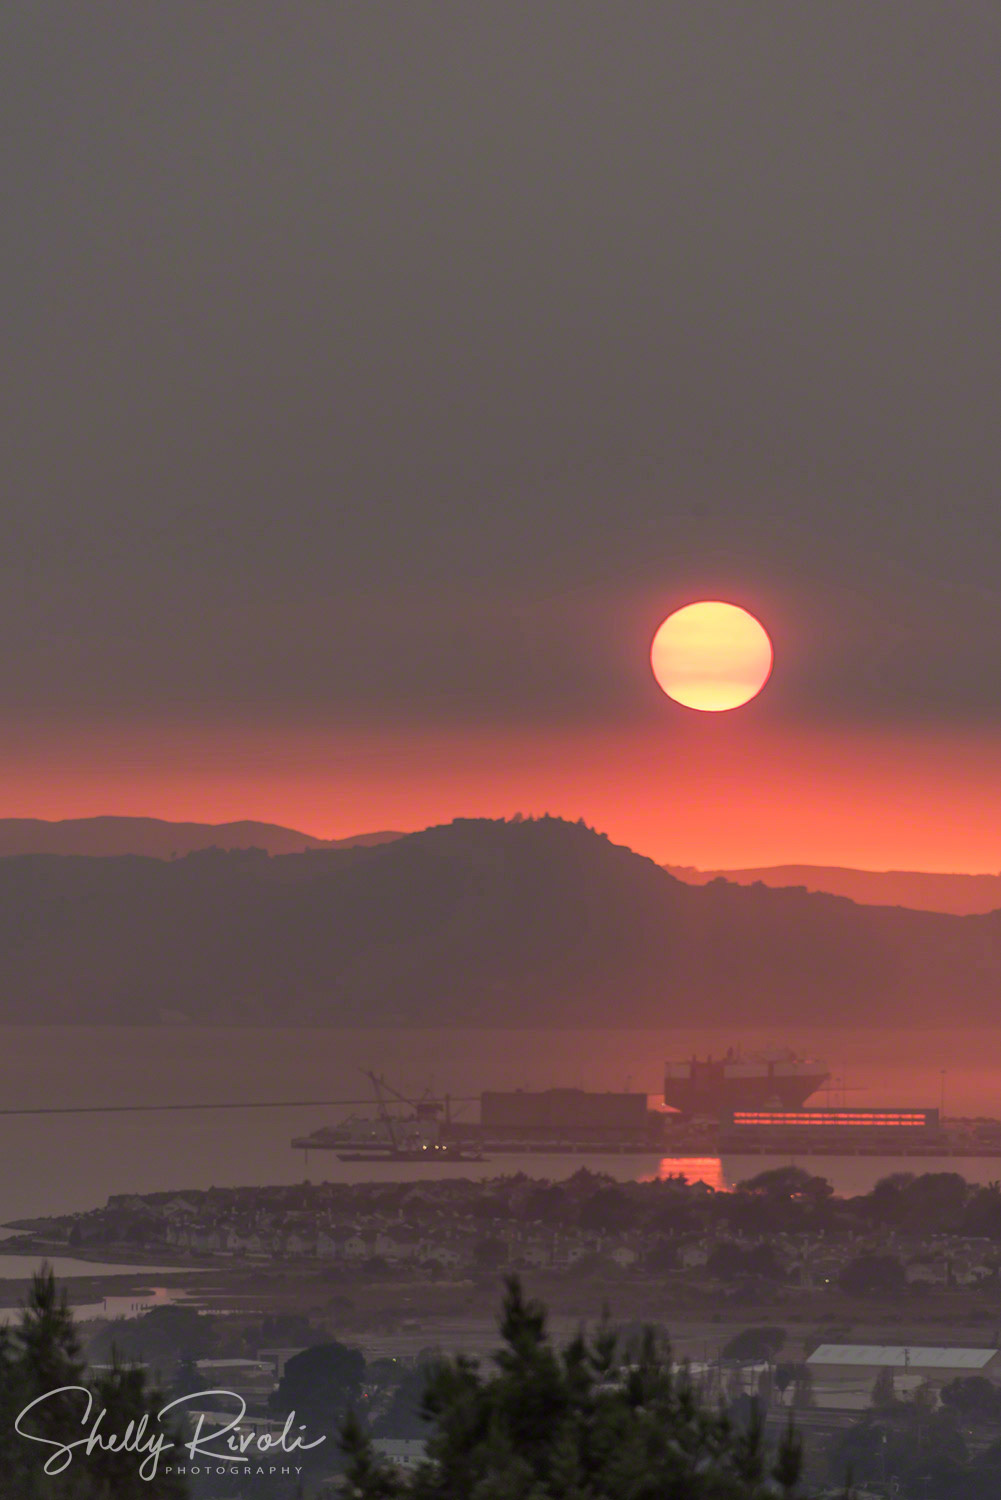 The setting sun sinks into a blood red band over the Marin Headlands and Point Richmond, California.